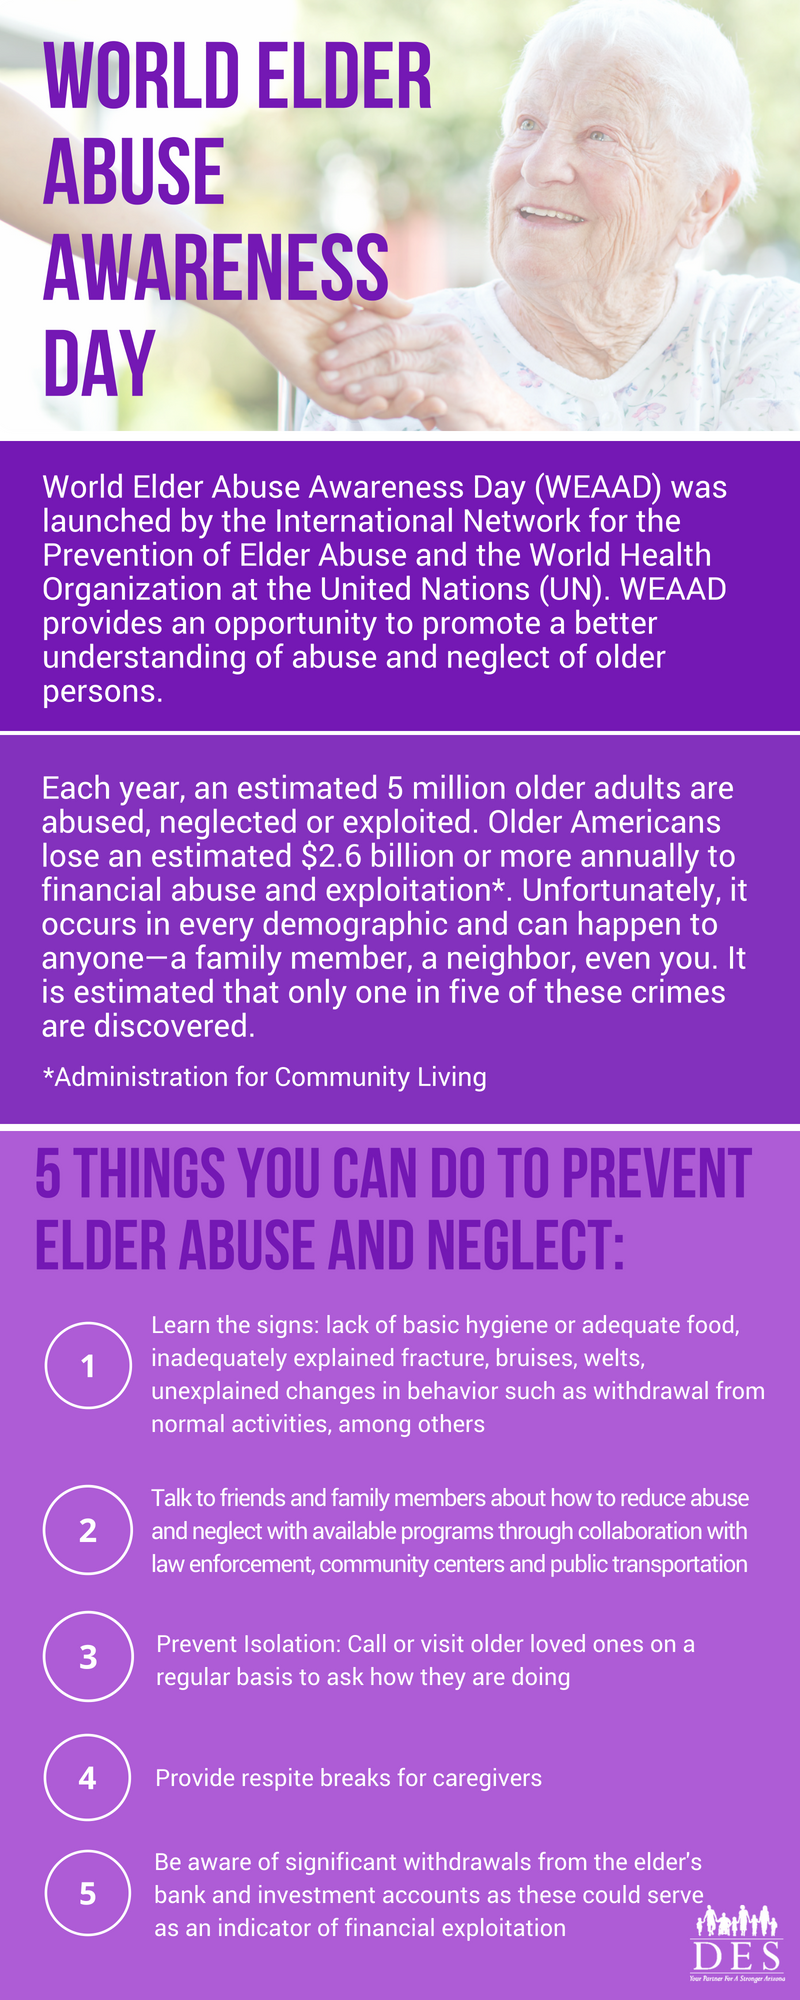 Facts and information about World Elder Abuse Awareness Day